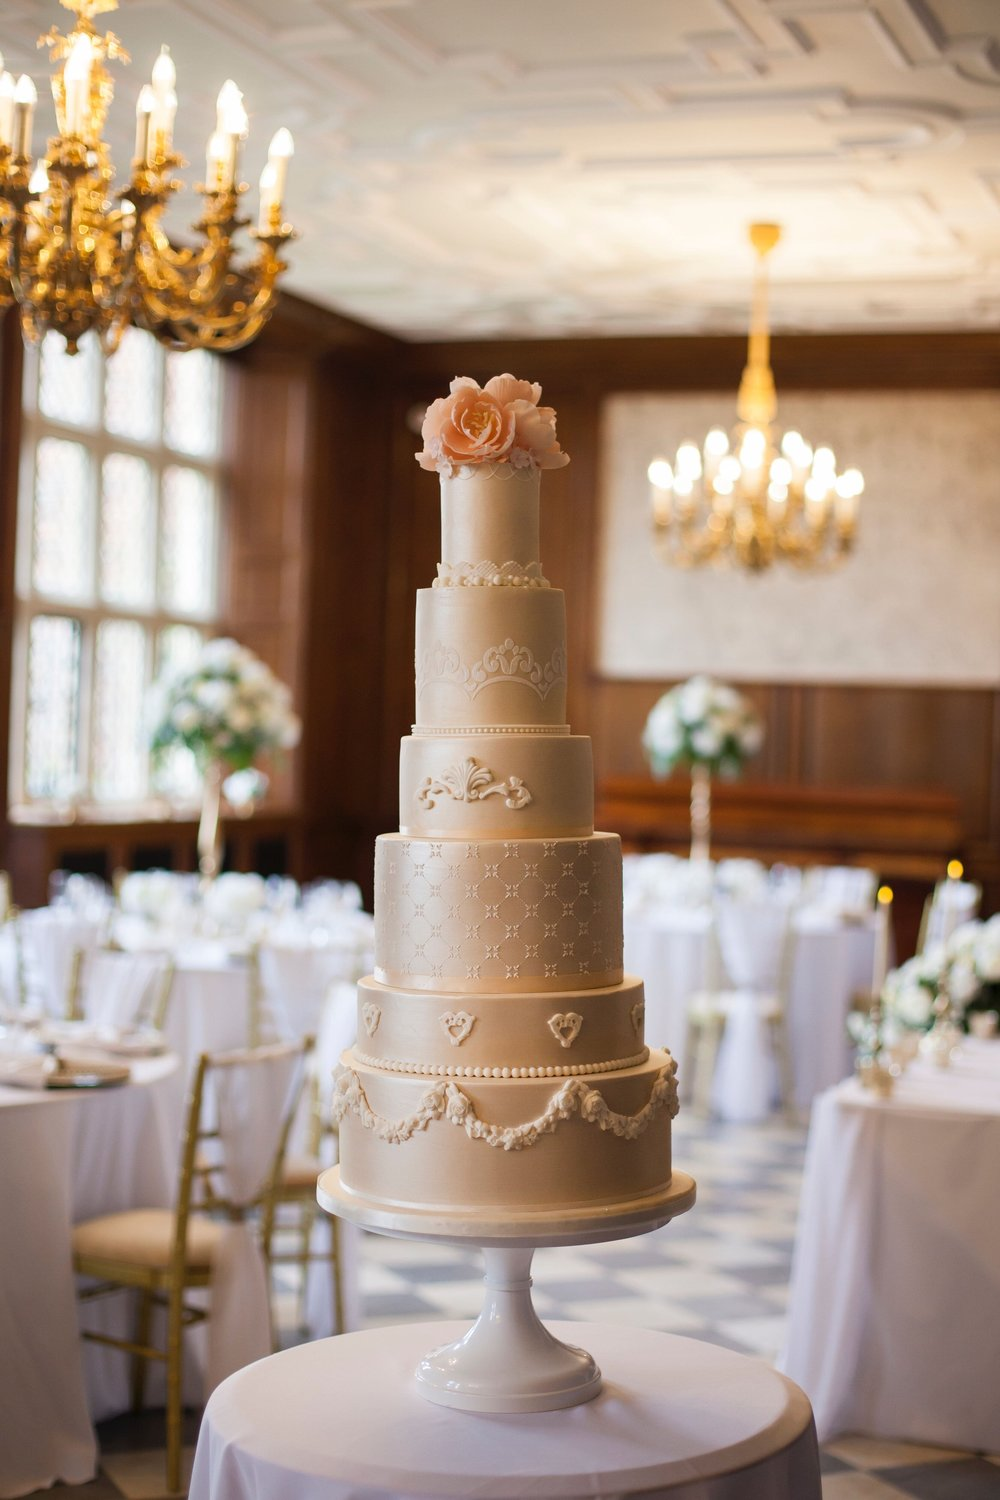 Grand wedding cake by Meadowsweet Cakes, set up at North mymms park wedding venue. Photography by Esme Robinson Photography